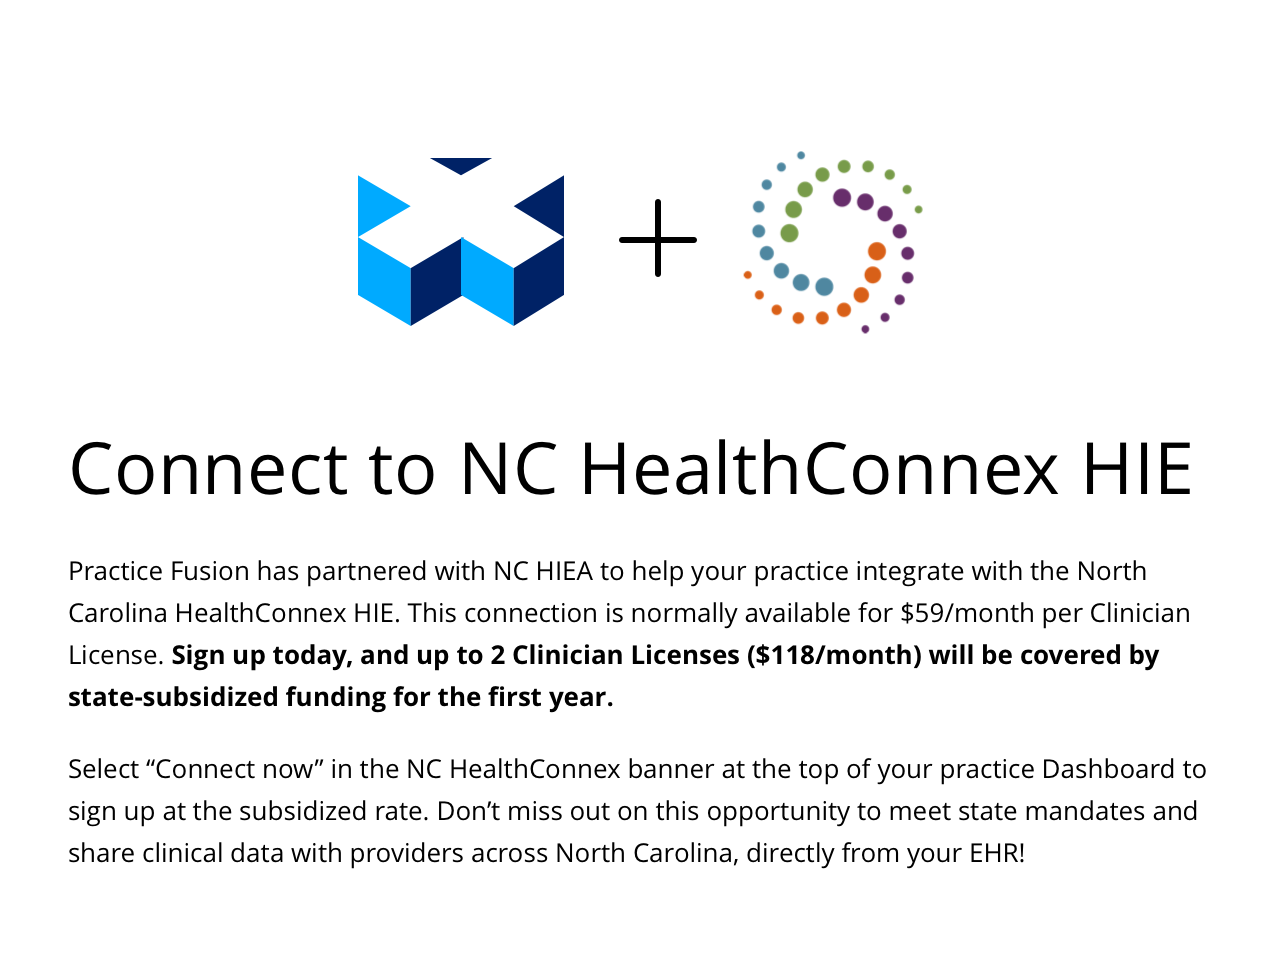 Practice Fusion has partnered with NC HIEA to help your practice integrate with the NC HealthConnex HIE.